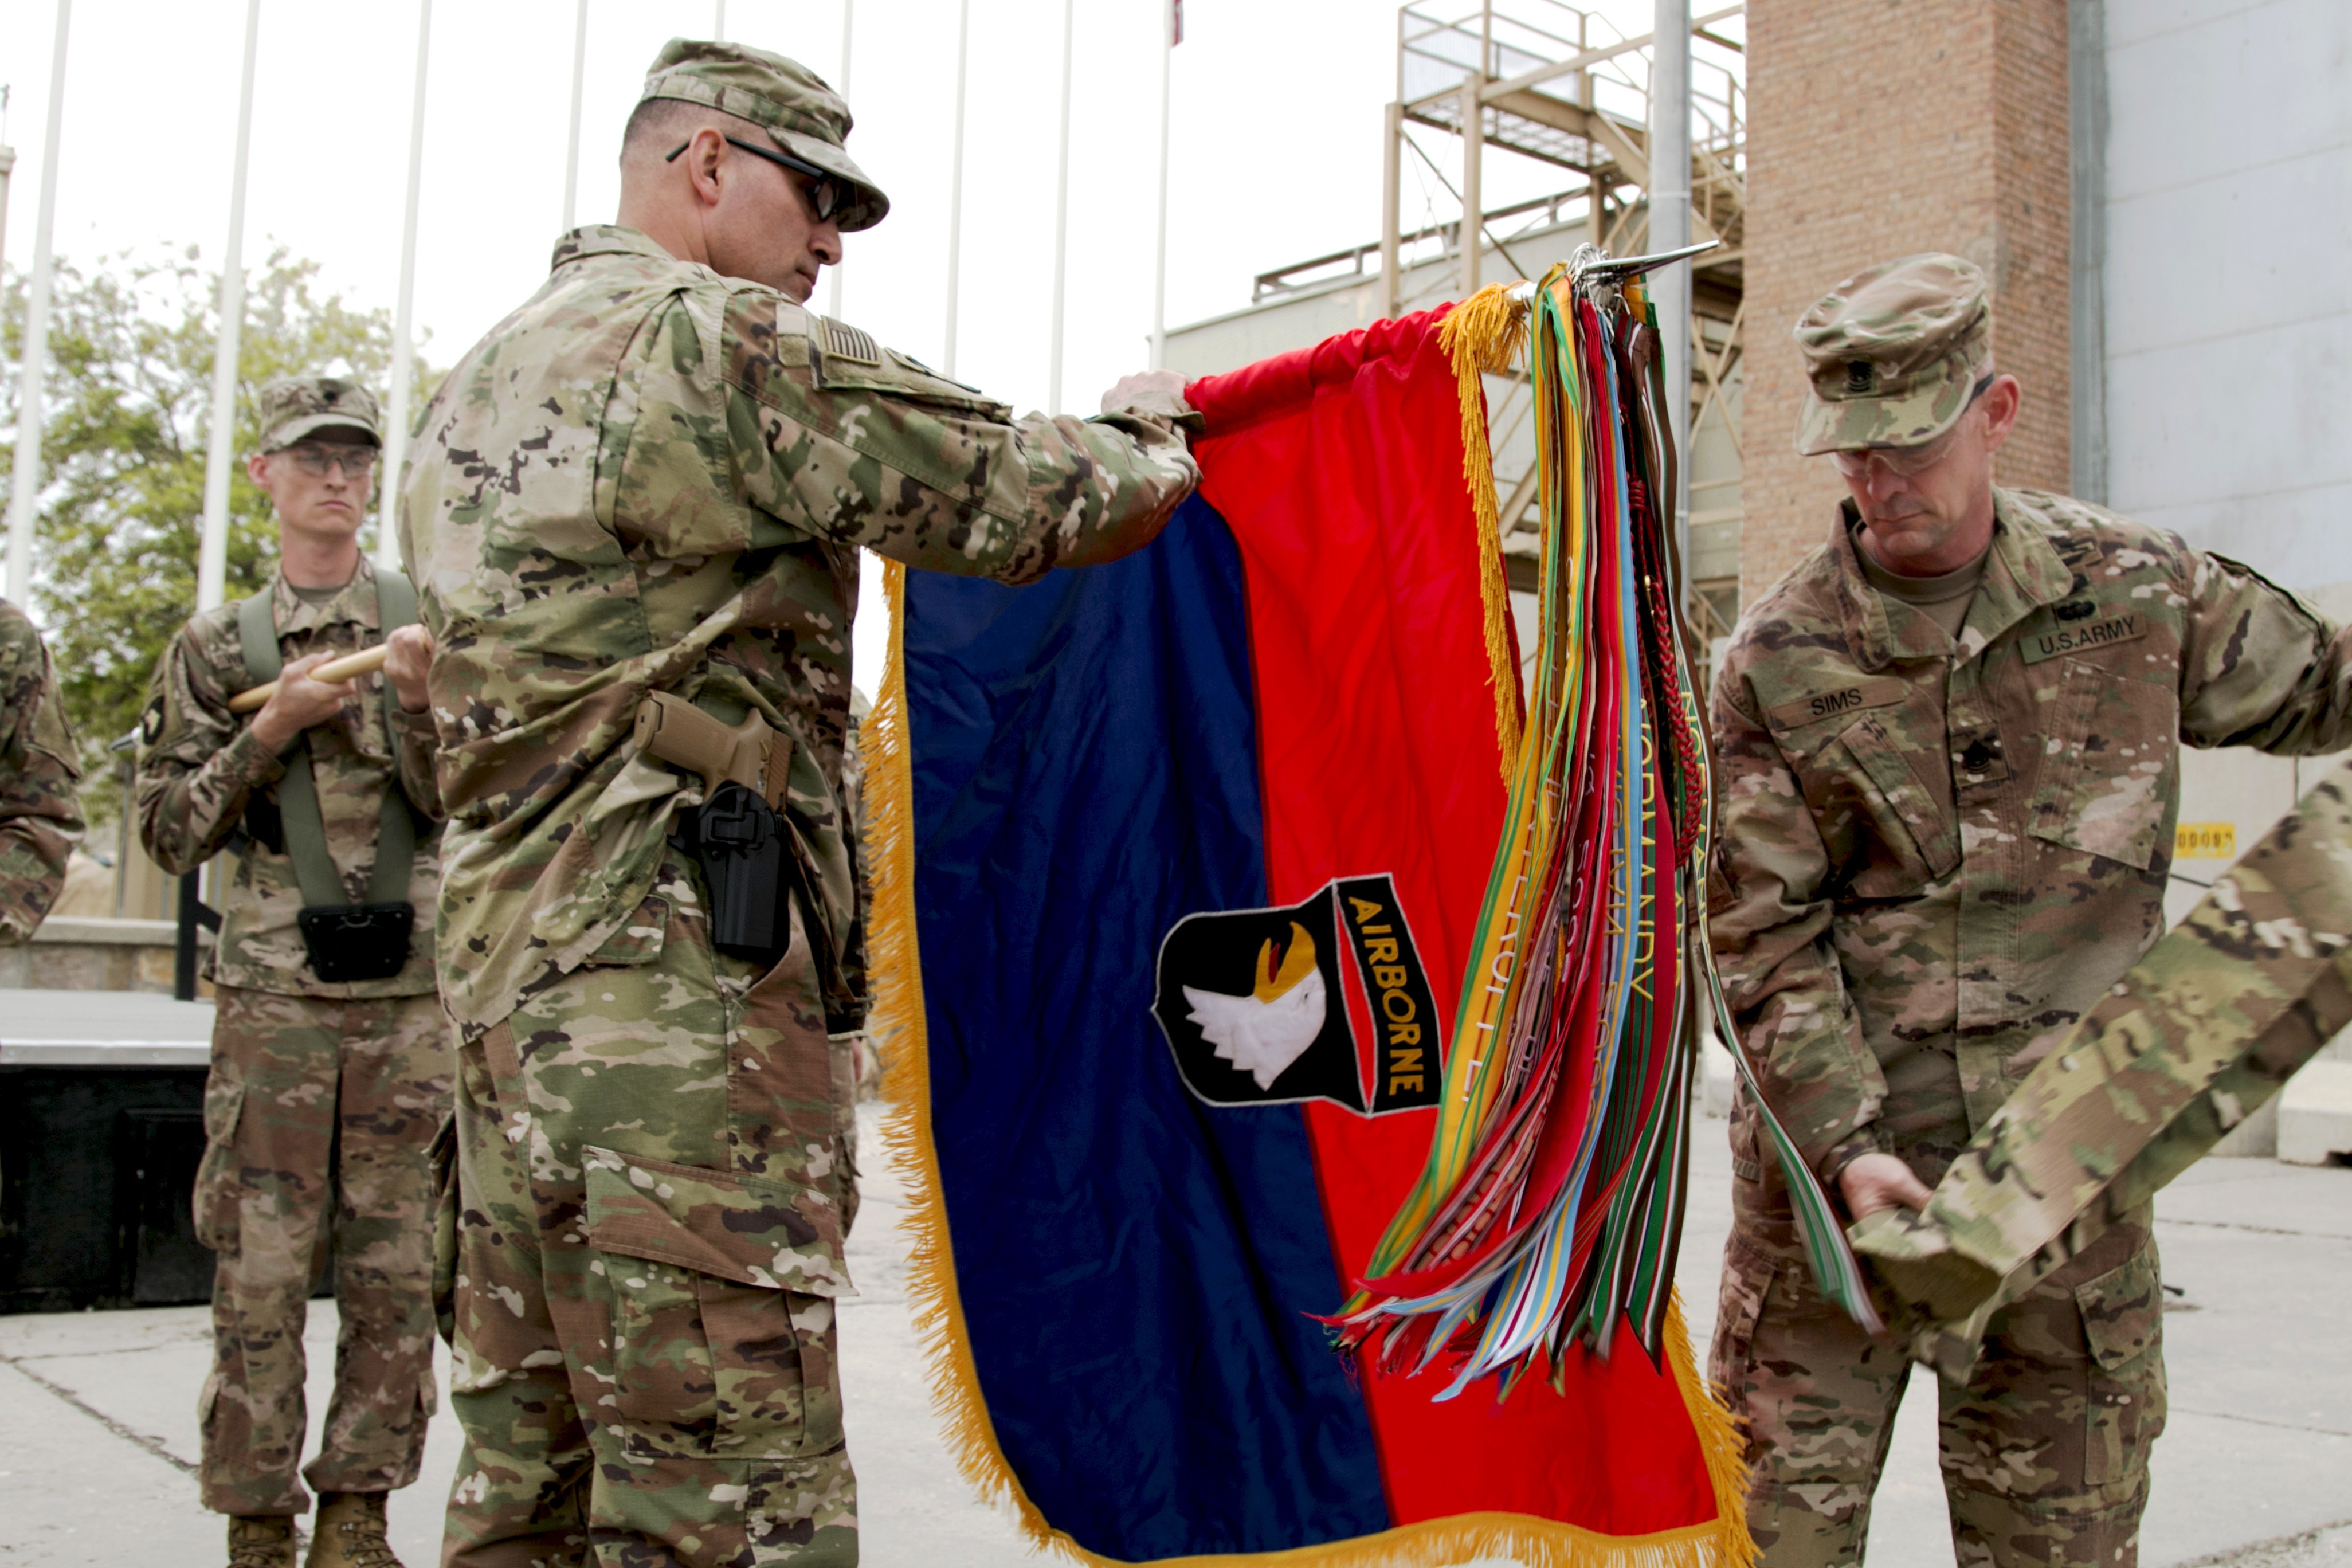 Is Our Mission In Afghanistan Worth >> 101st Abn Div Assumes Afghanistan Mission Looks To Enable Enemy